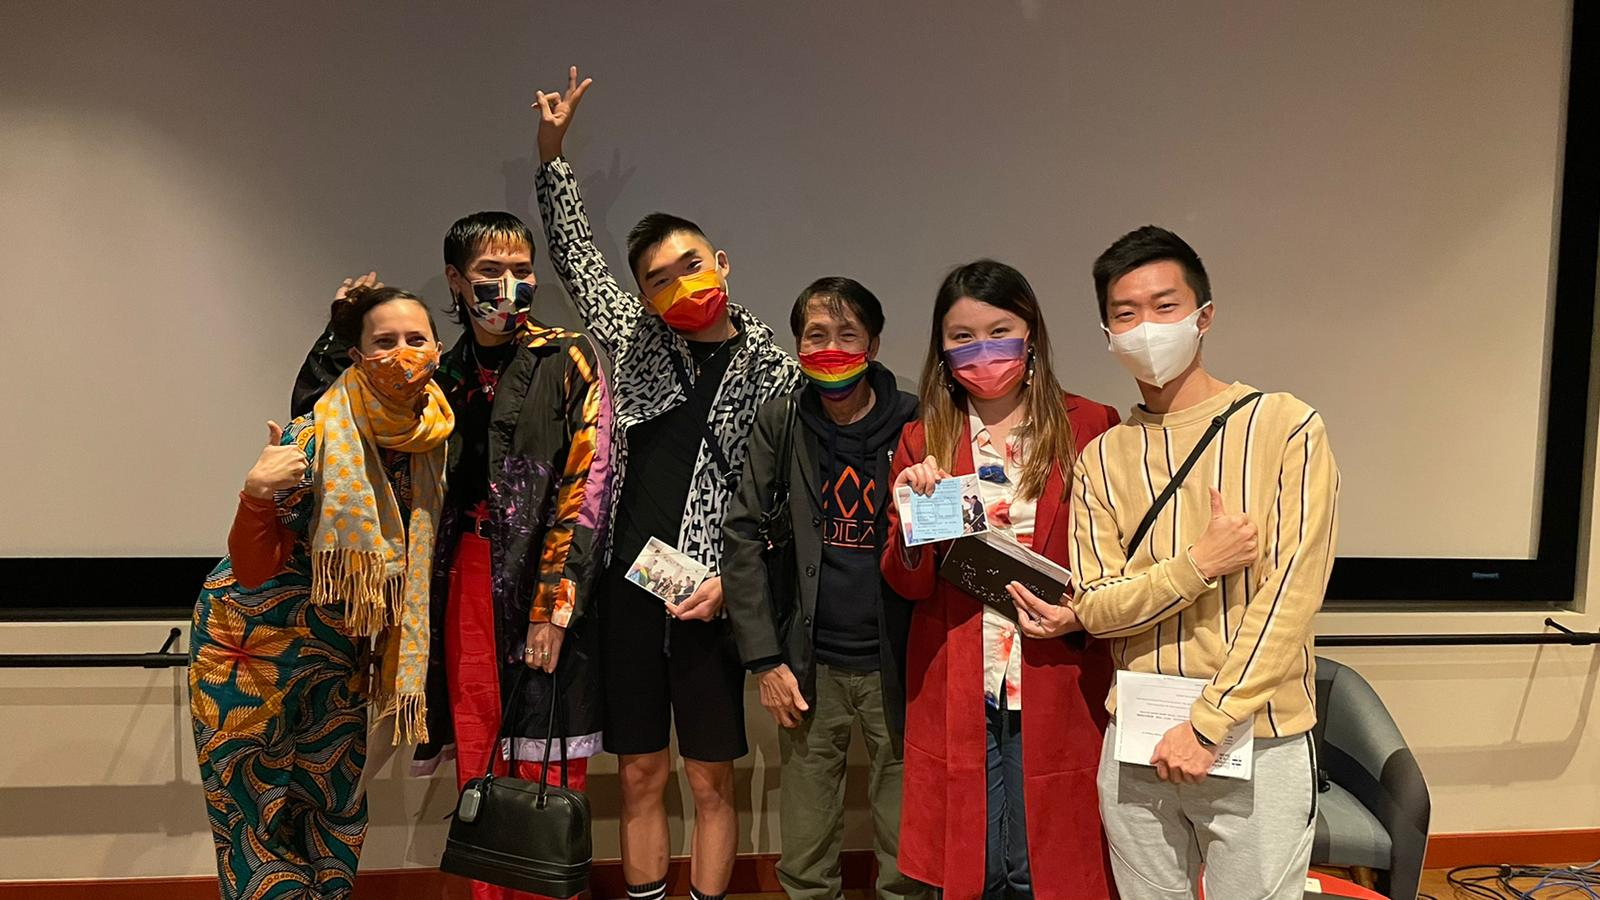 There are 6 people dressed up in colorful clothes, wearing masks due to COVID-19. This picture shows a few CHAT team members as well as participants from the Introductory Session.